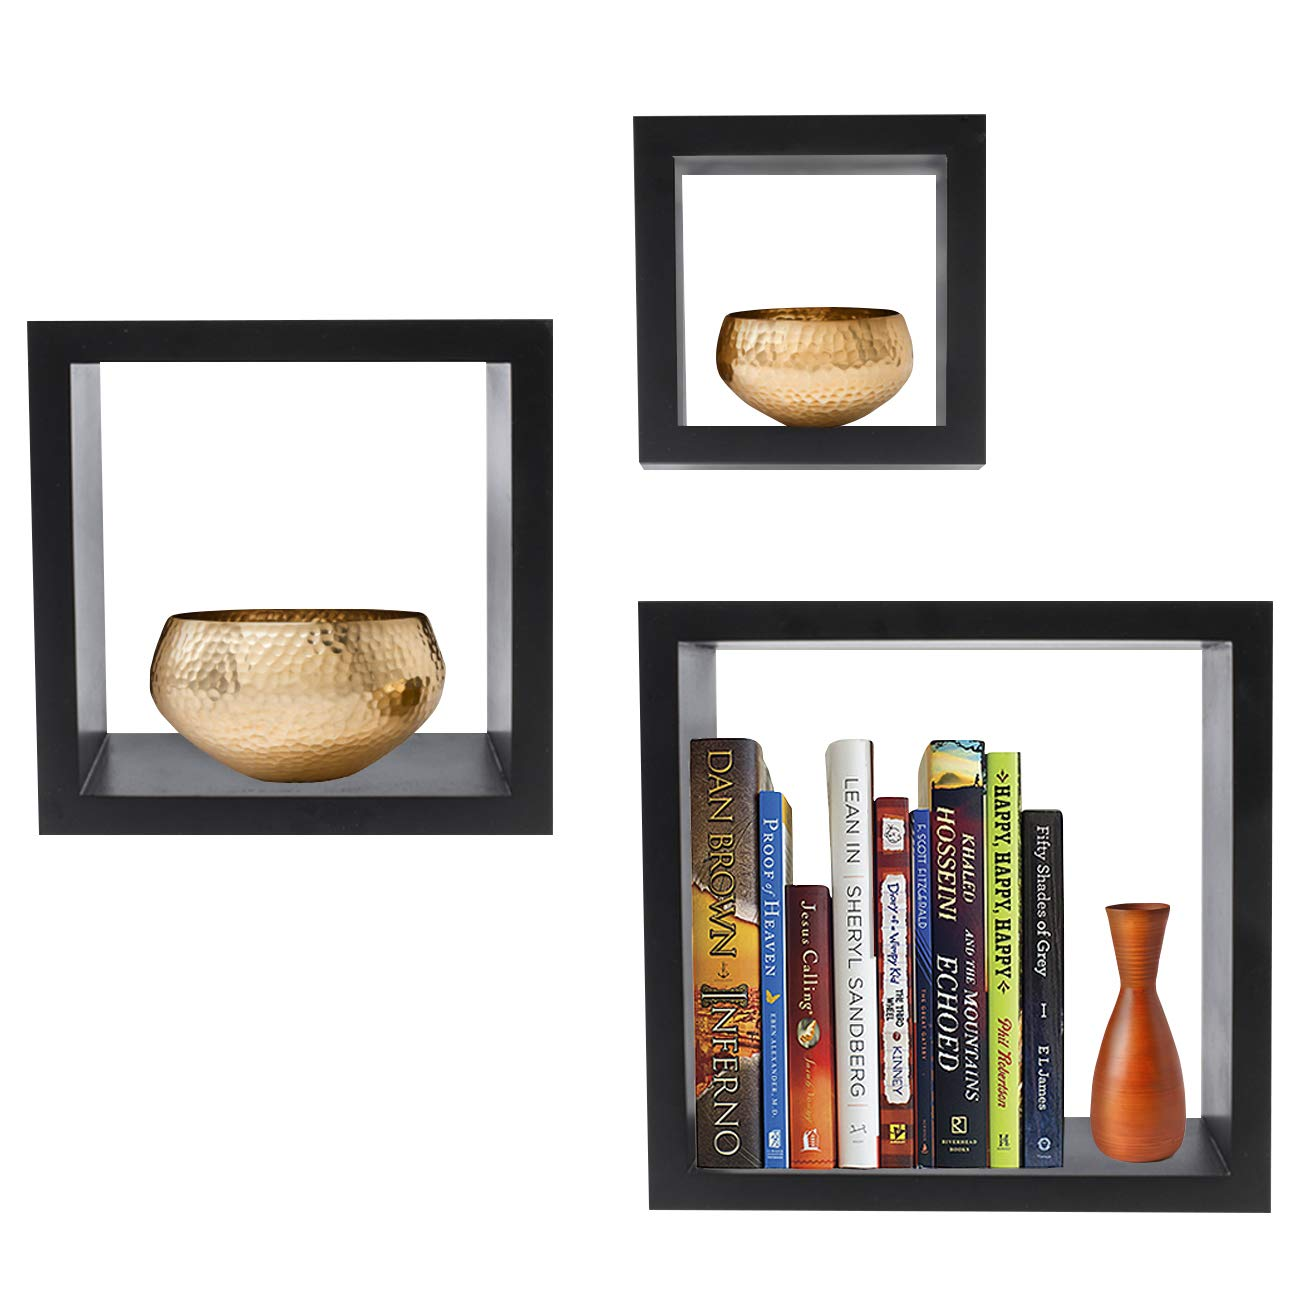 Sorbus Floating Shelves— Square Shaped Hanging Wall Shelves for Decoration - Features Shadow Square Frame Design for Photo Frames, Collectibles, Decorative Items, and Much More (Set of 3, Black)